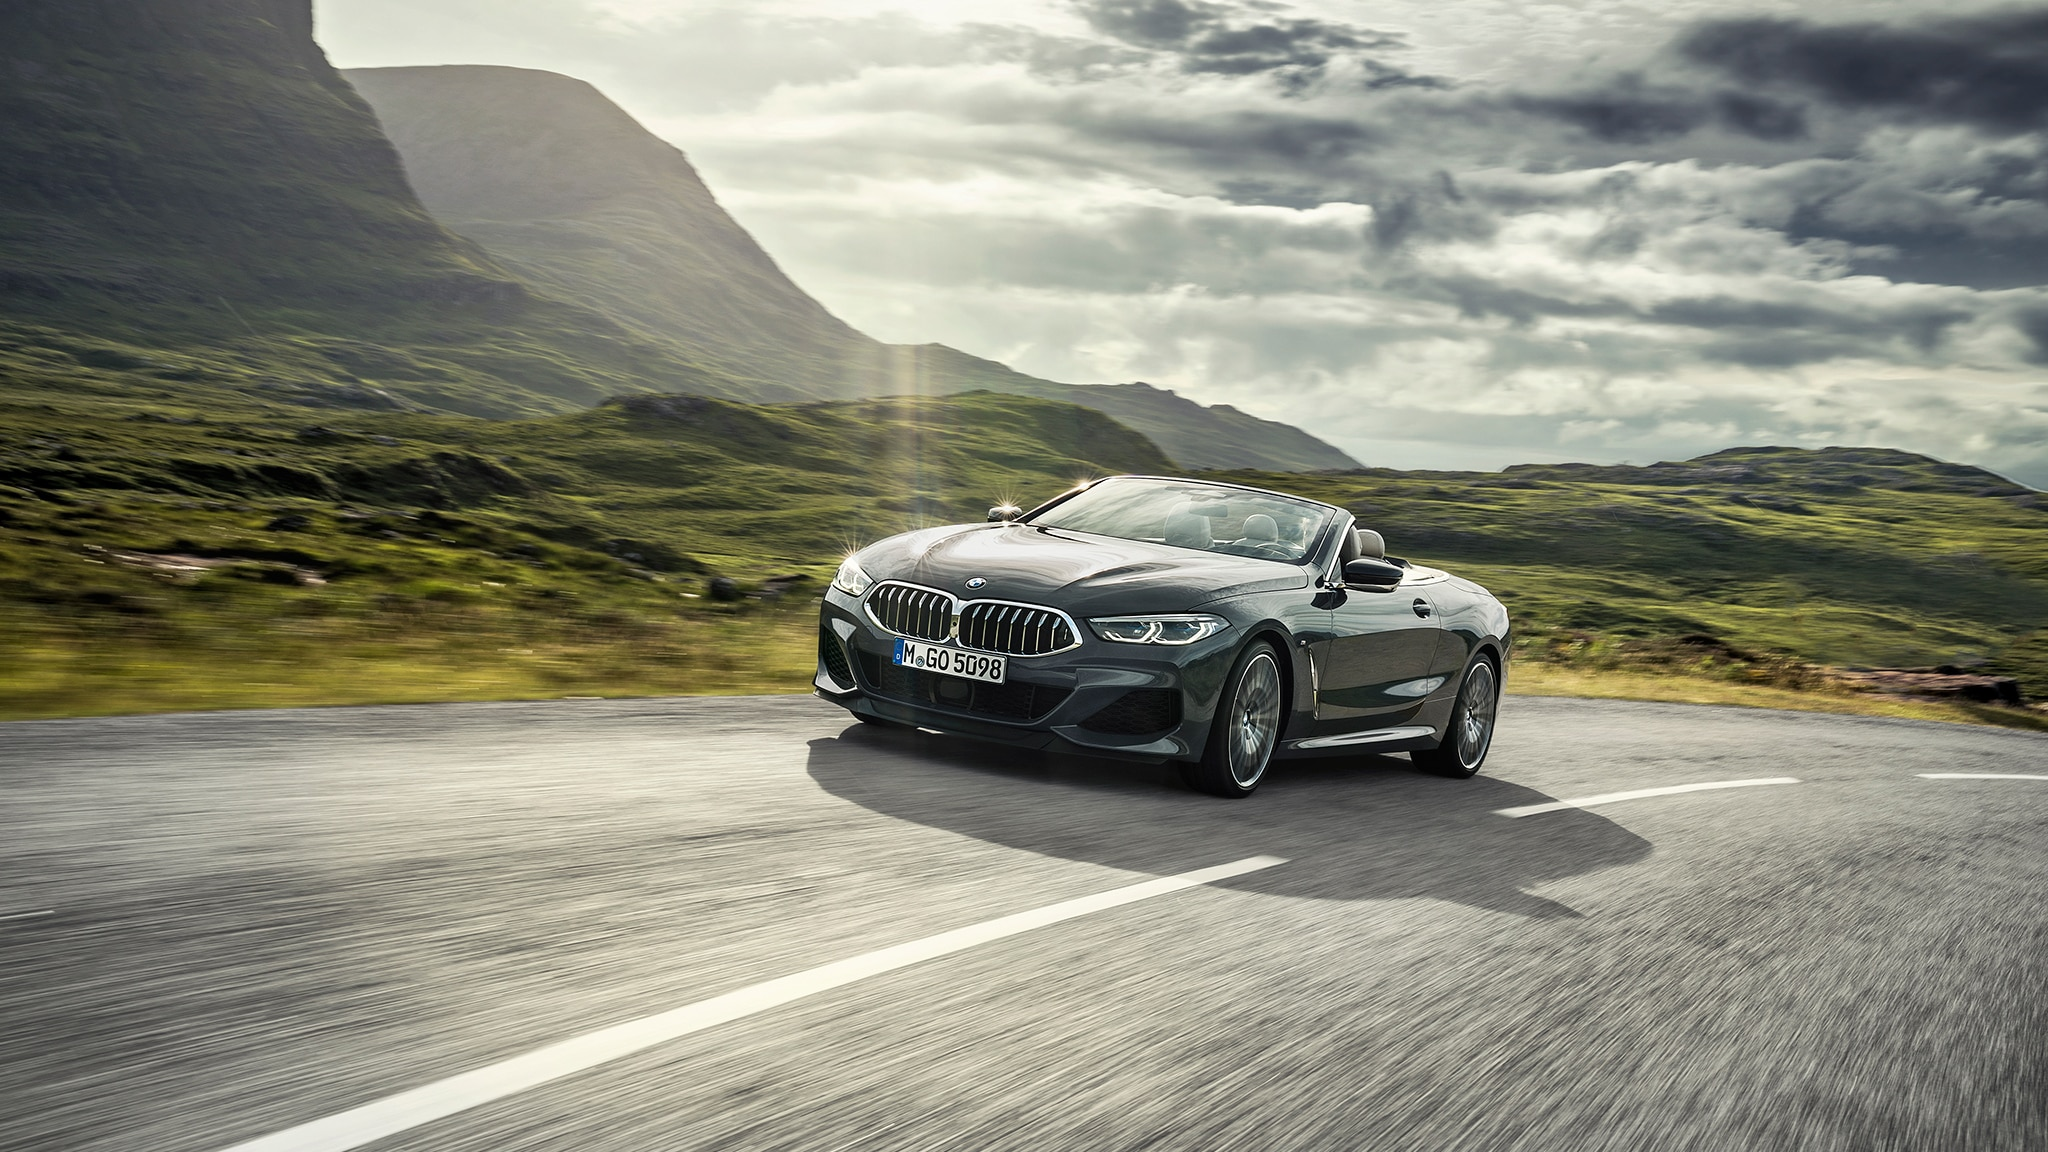 2019 BMW M850i Convertible Front Side Around Curve